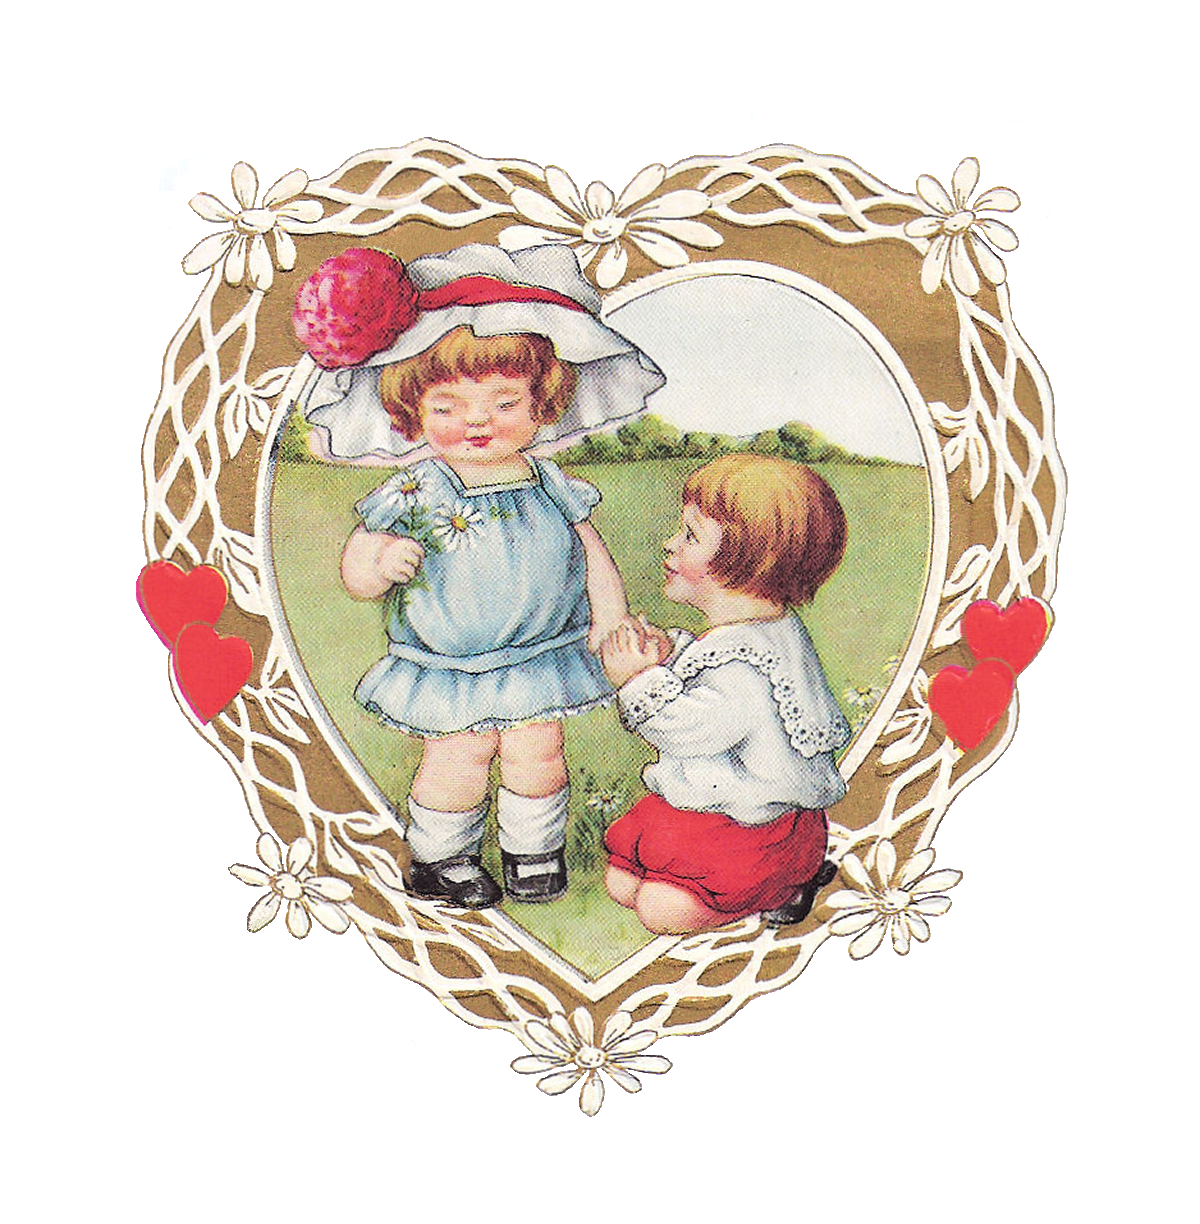 clipart valentines day cards - photo #25